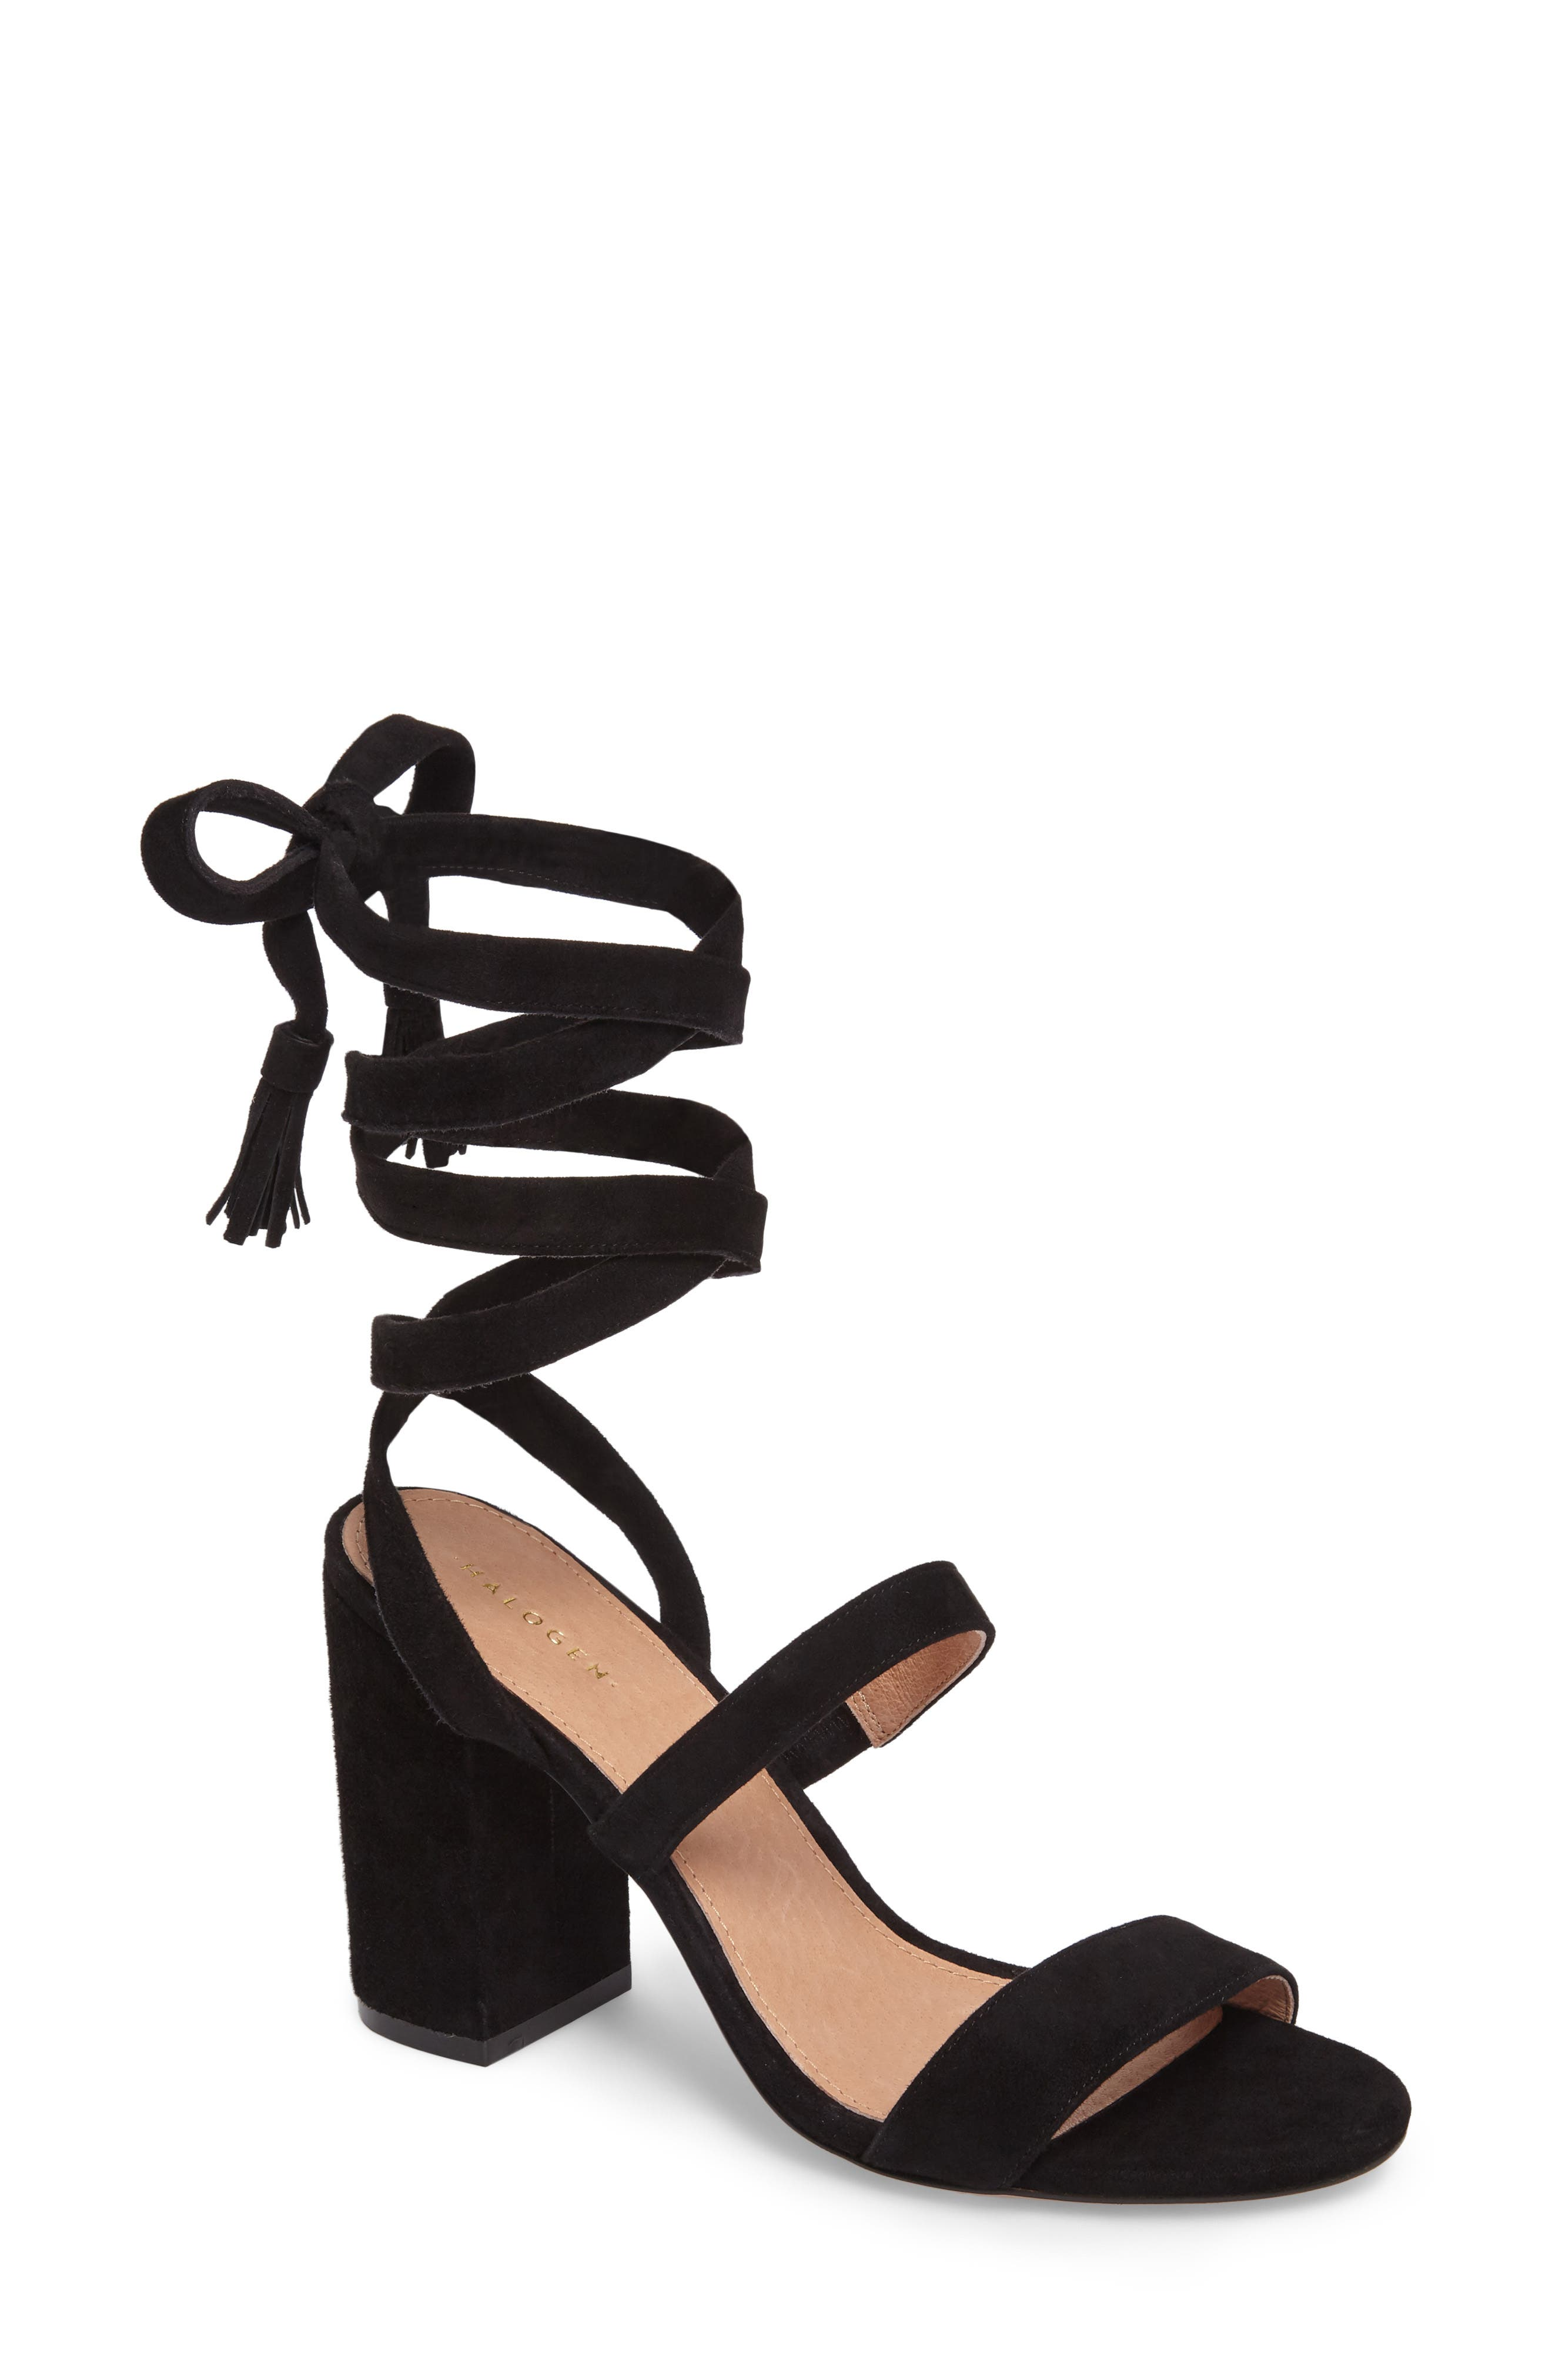 Alternate Image 1 Selected - Halogen® Finley Lace-Up Sandal (Women)